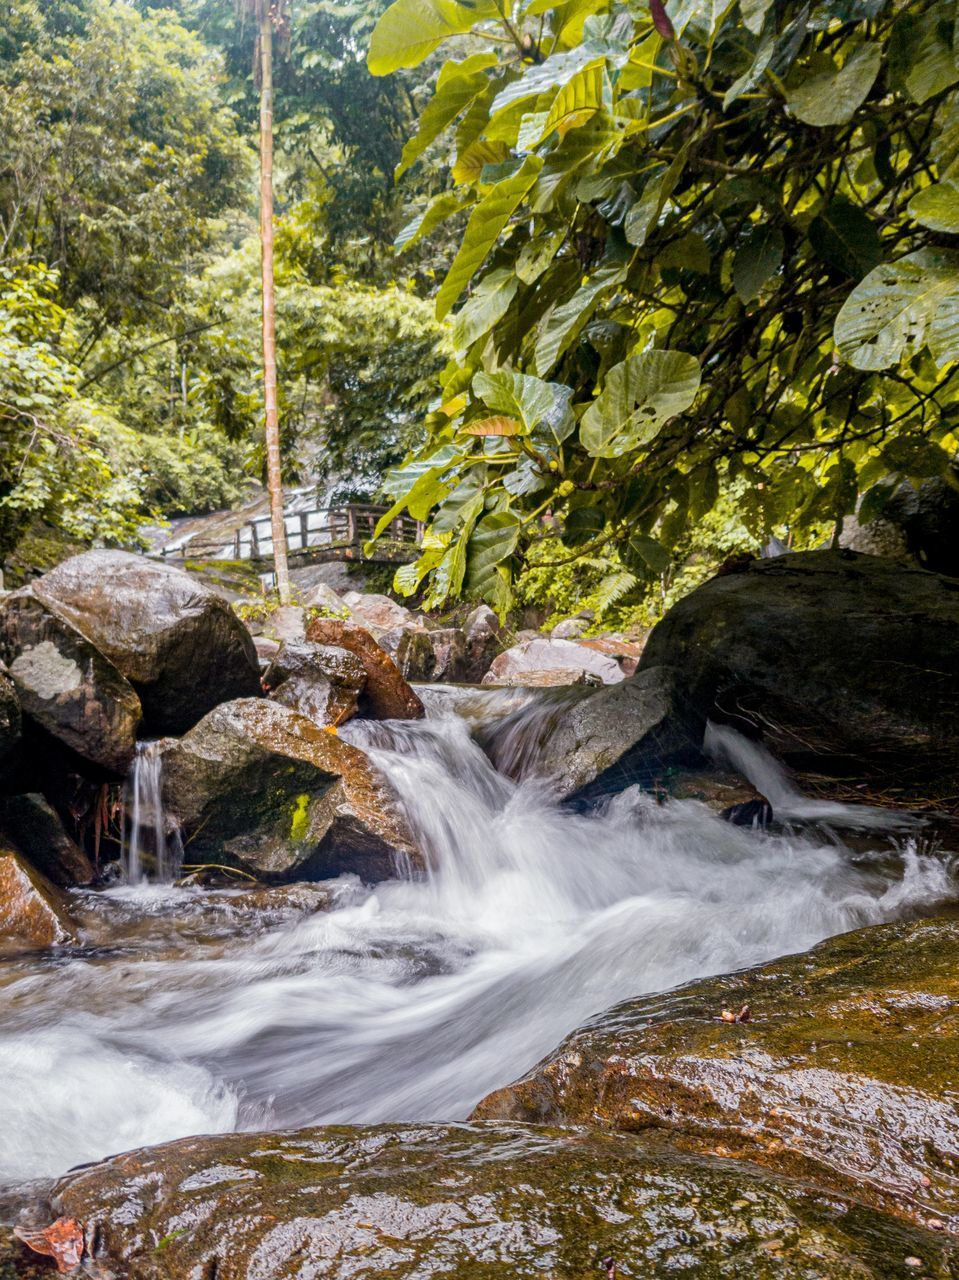 VIEW OF WATERFALL IN FOREST